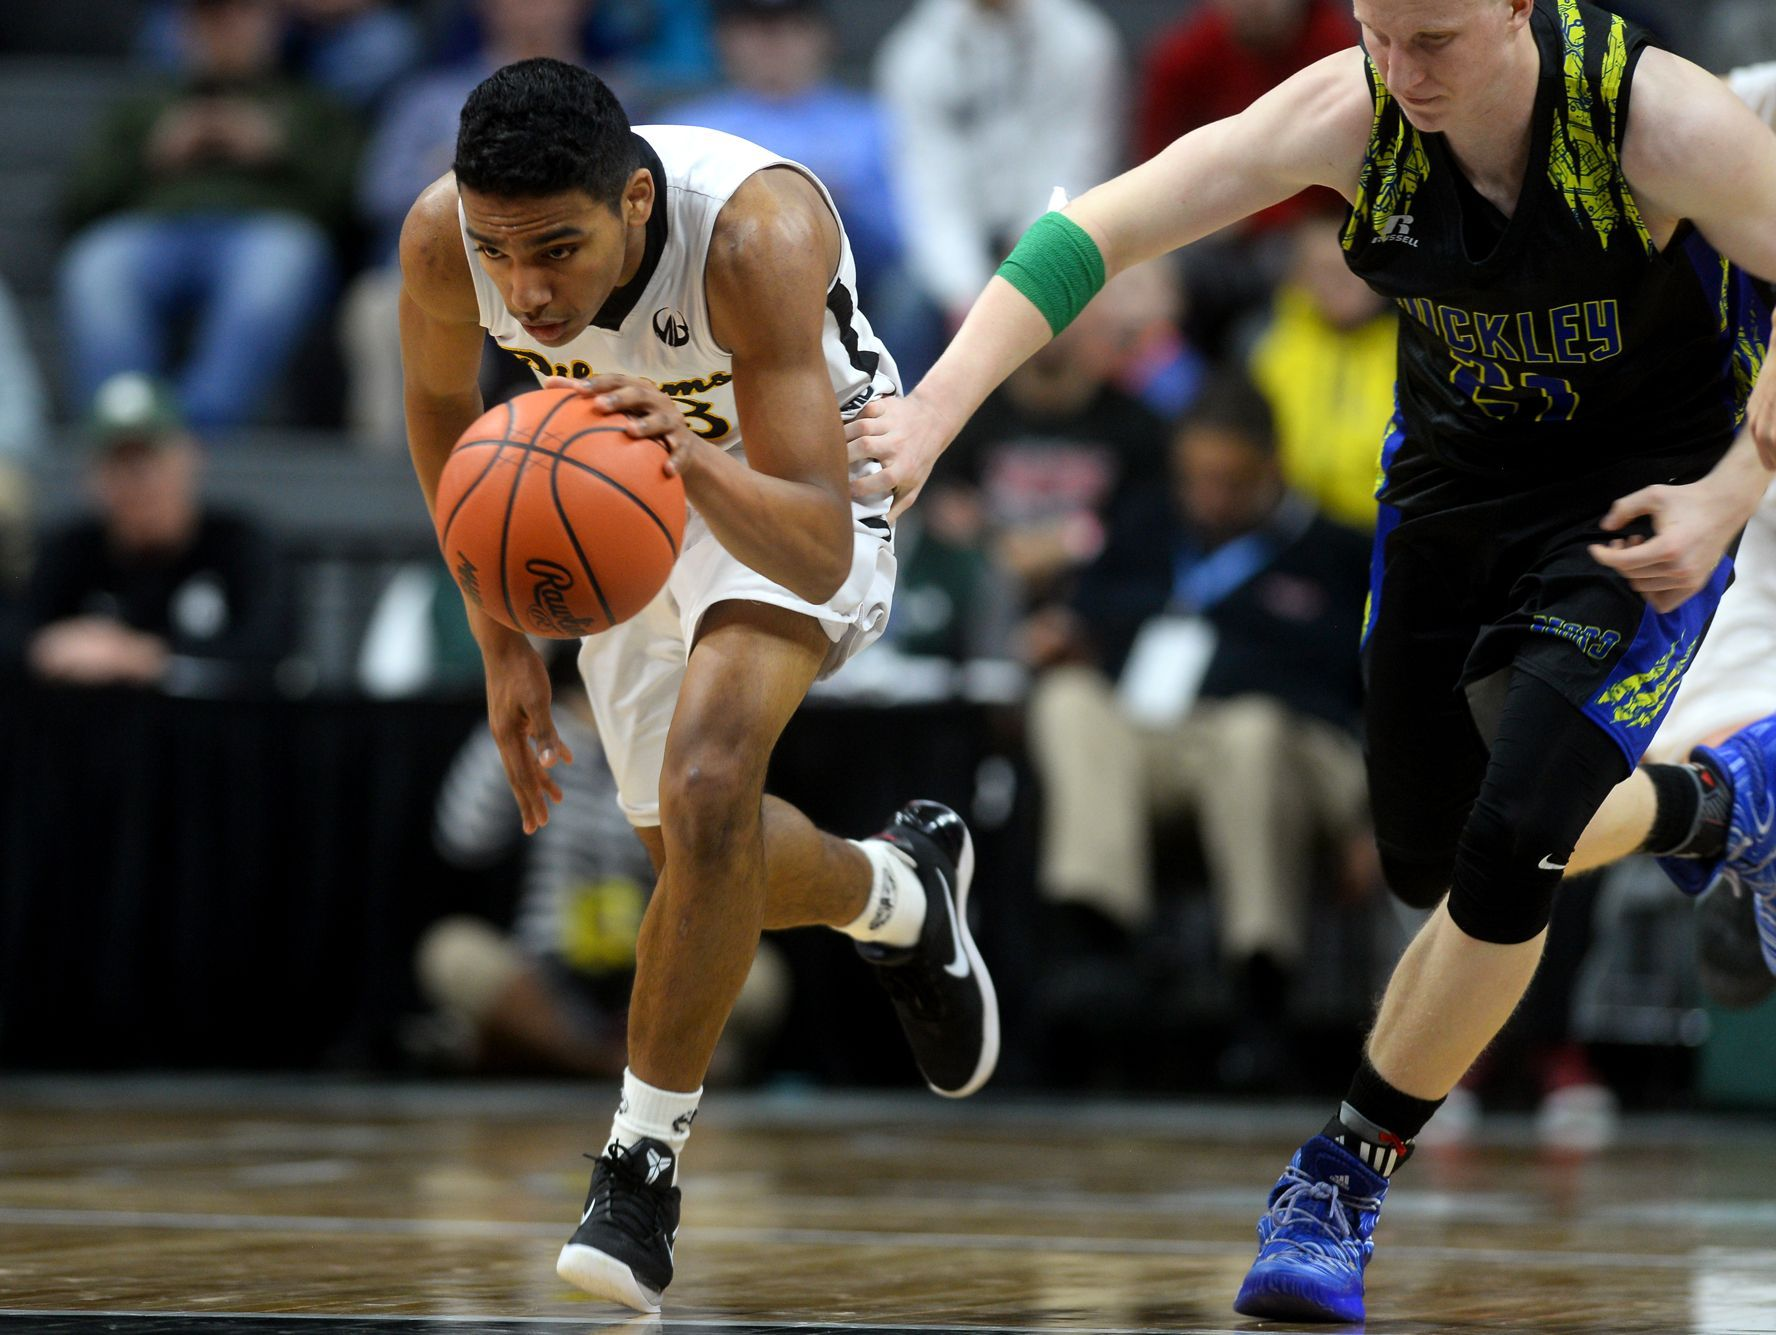 Lansing Christian's Forrest Bouyer drives the ball down the court during the Class D state semifinals against Buckley on Thursday, March 23, 2017 at the Breslin Center in East Lansing. Buckley won, 68-61.